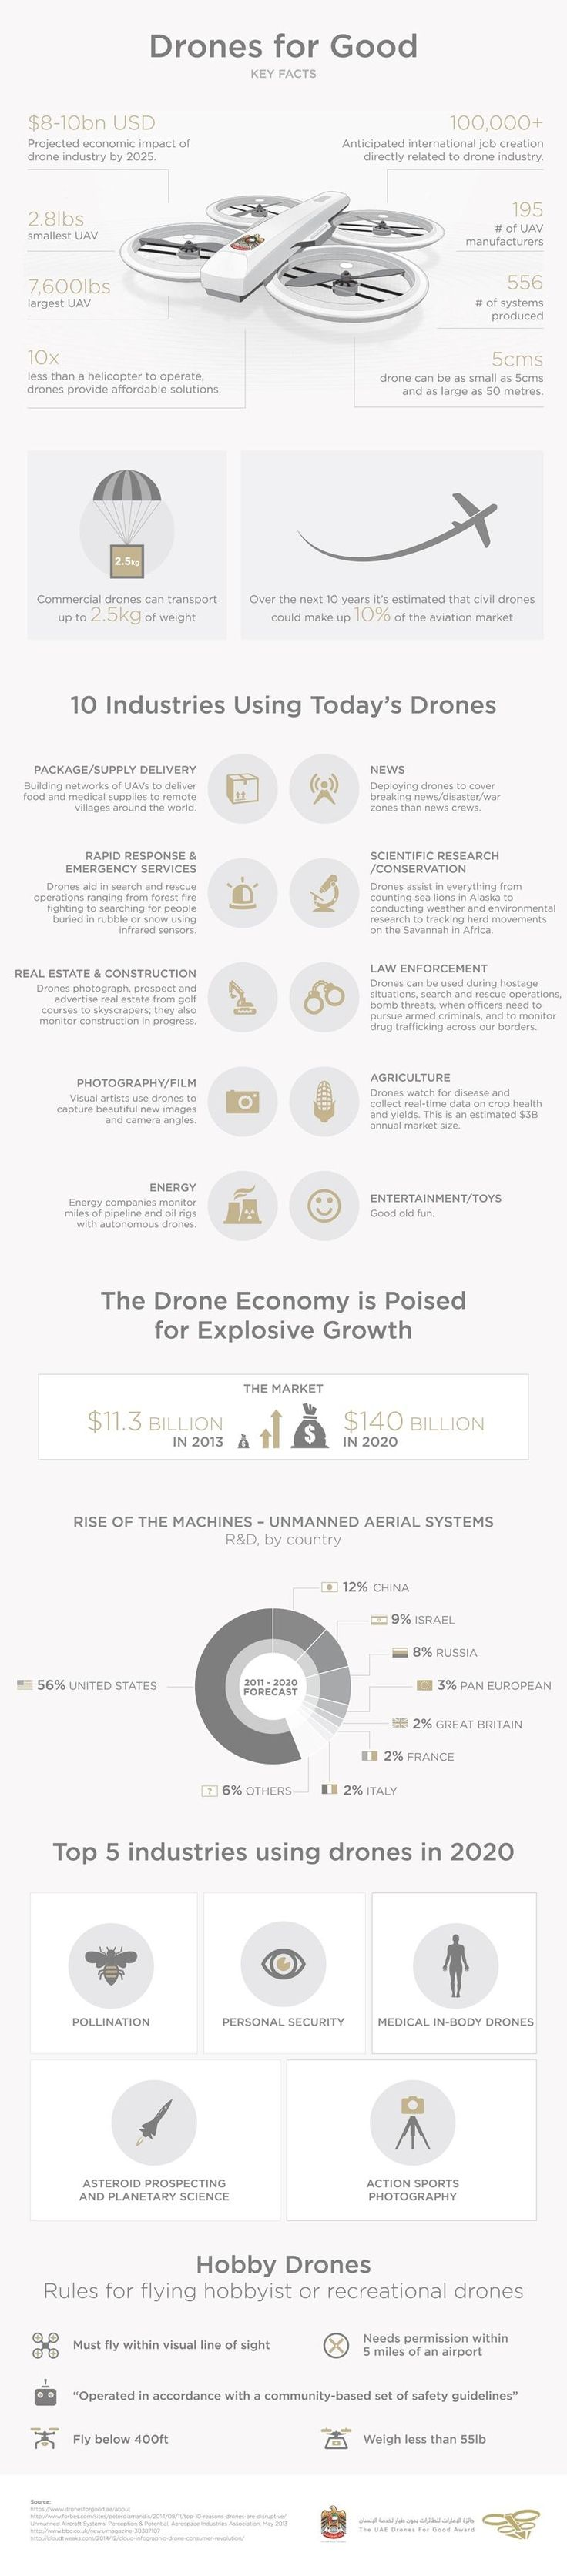 Drones for Good (Infographic)